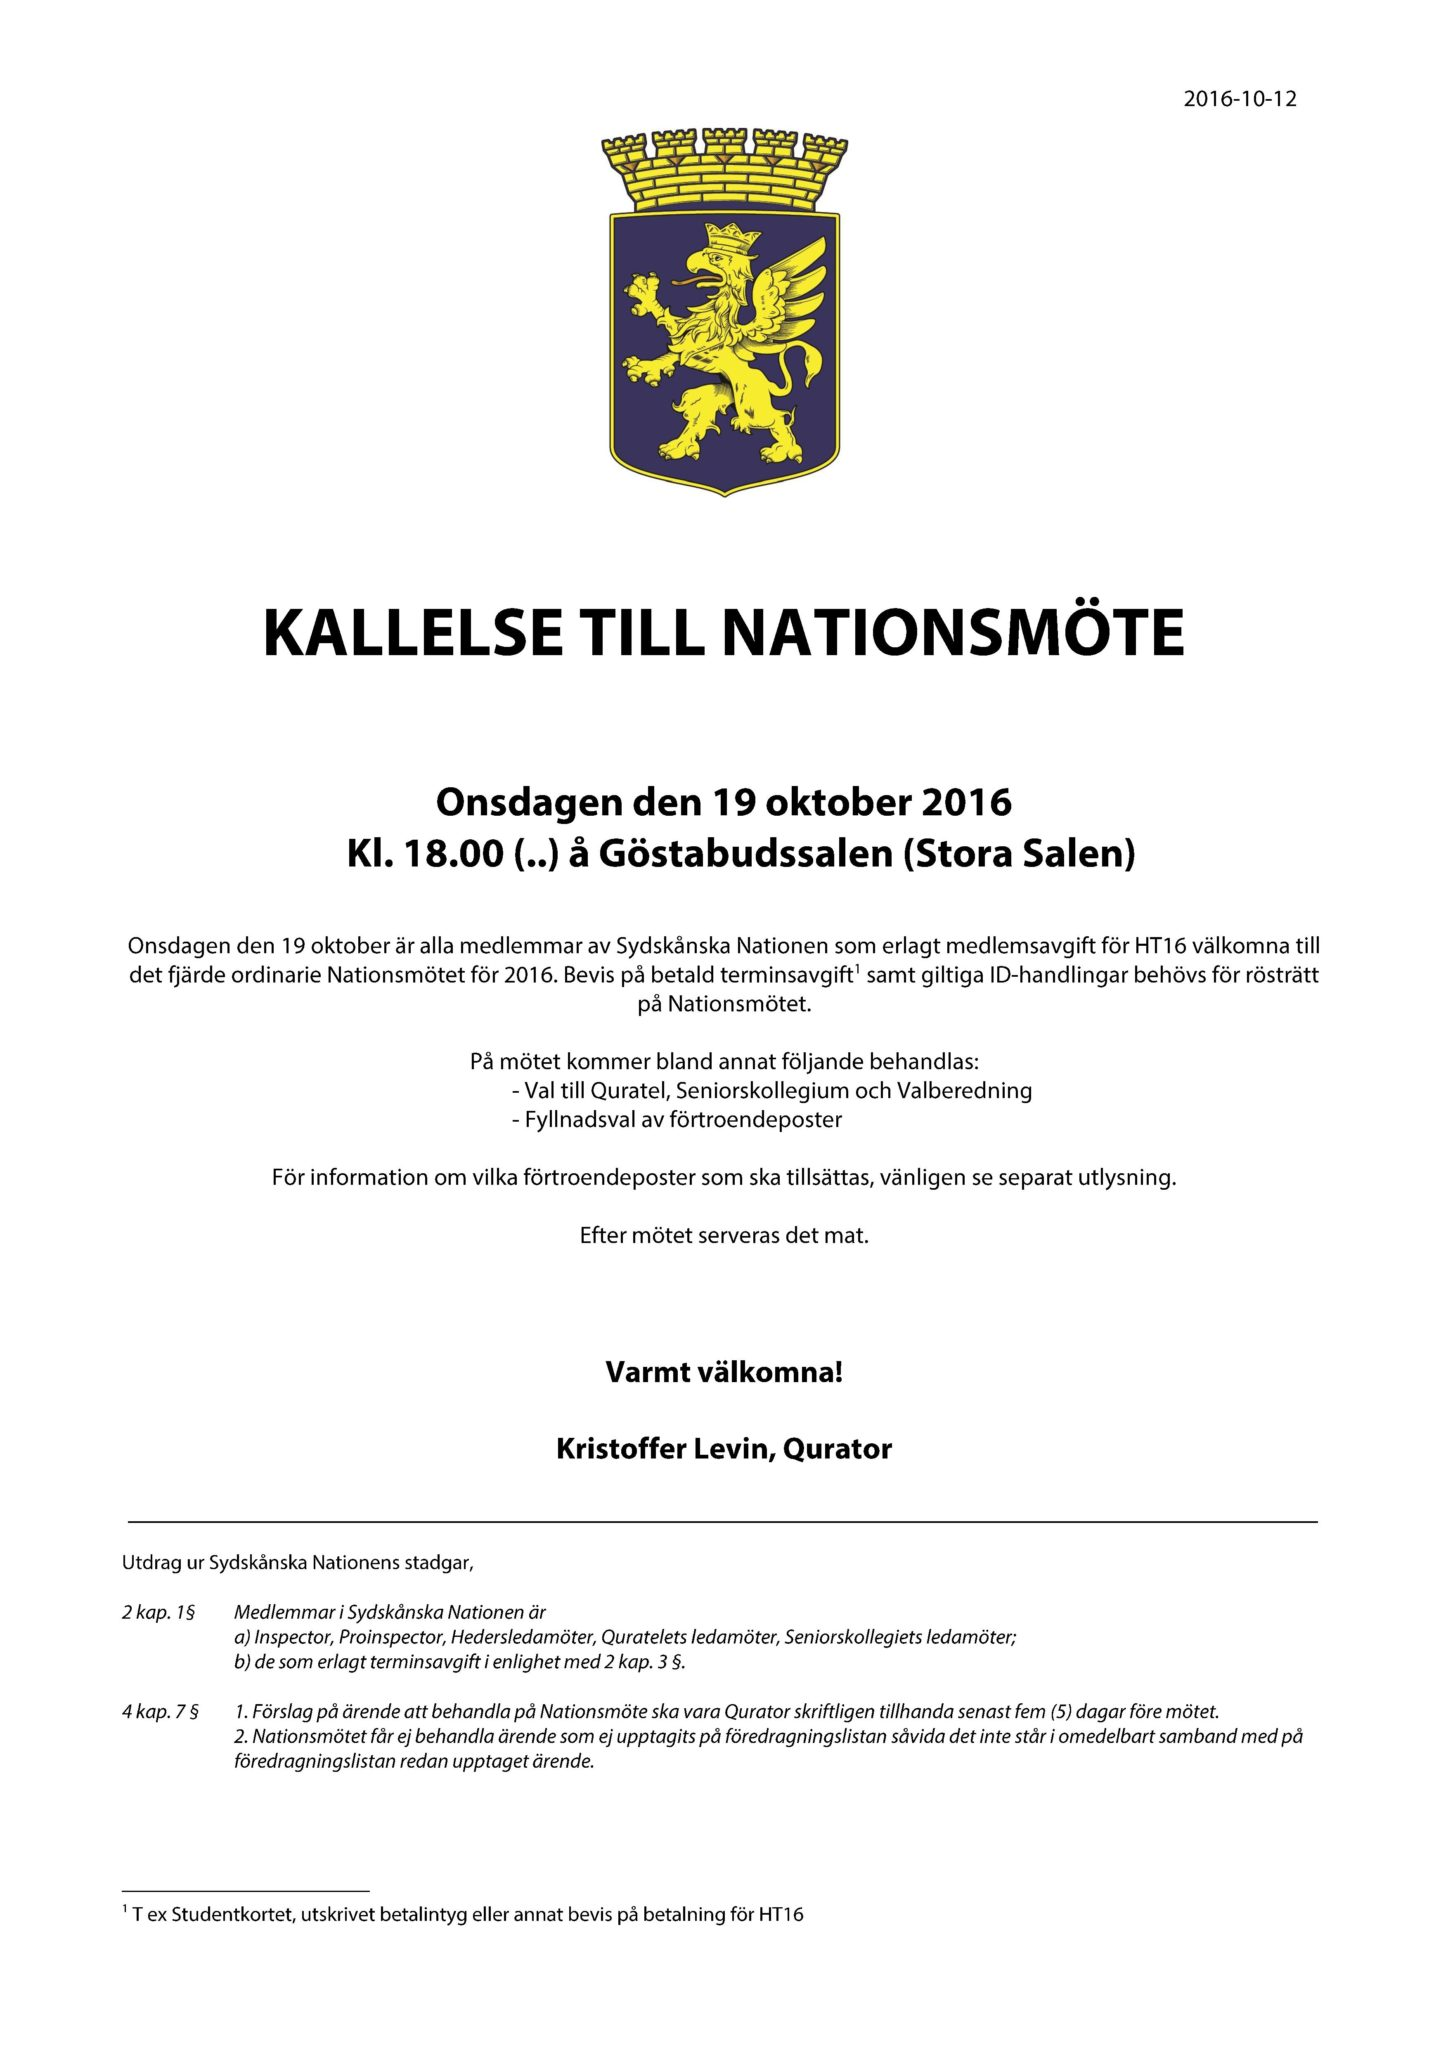 kallelse-till-nationsmote-2016-10-19